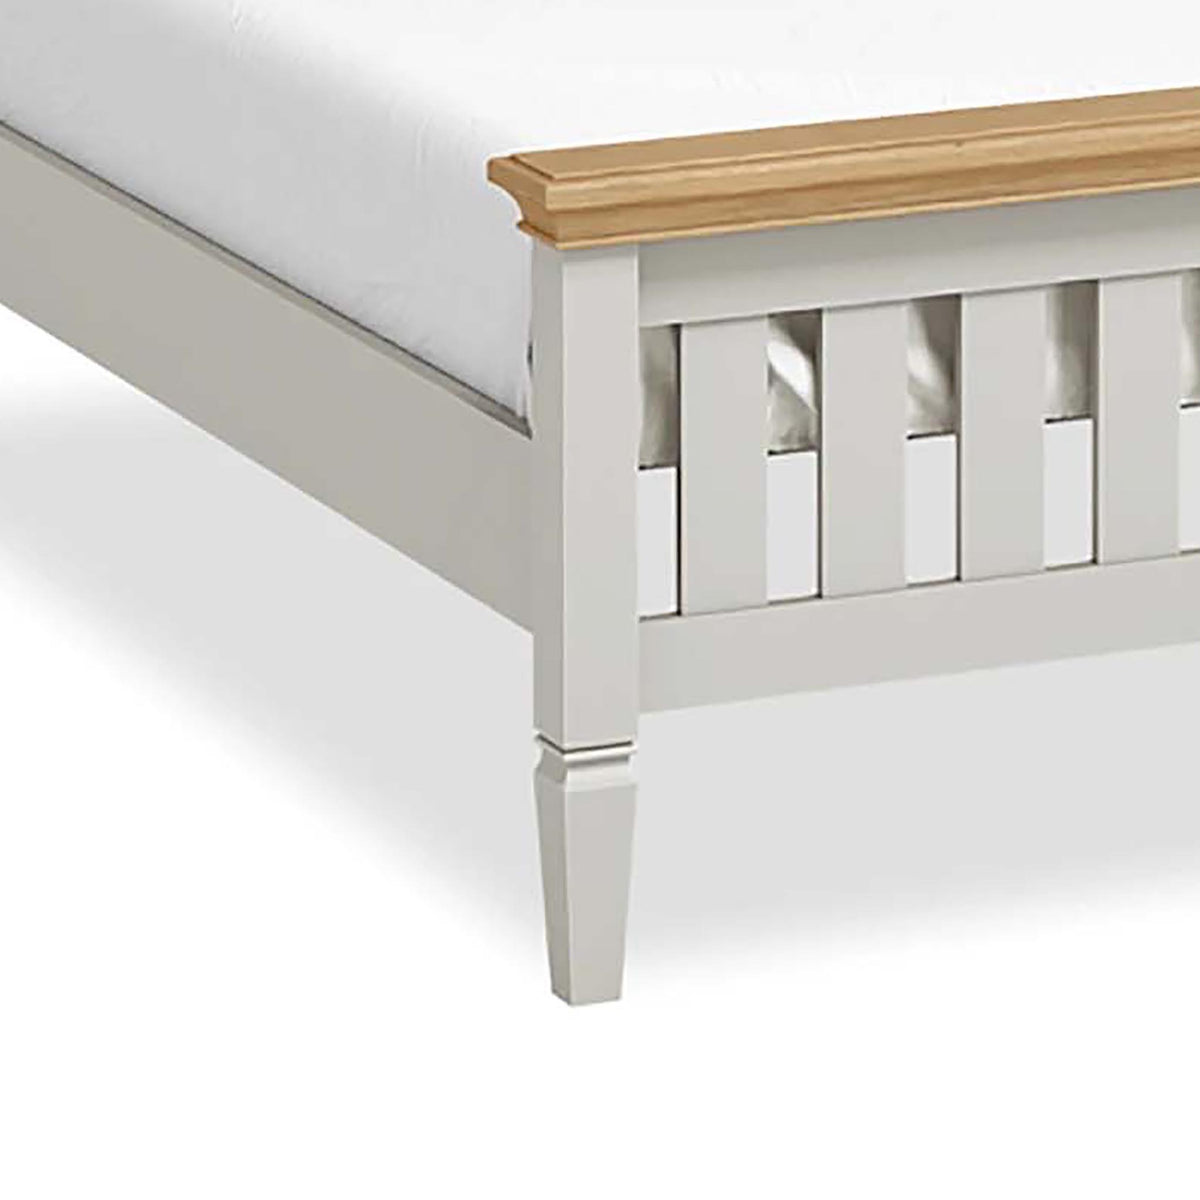 Normandy Grey 5' Bed Frame - Close Up of Bed Legs